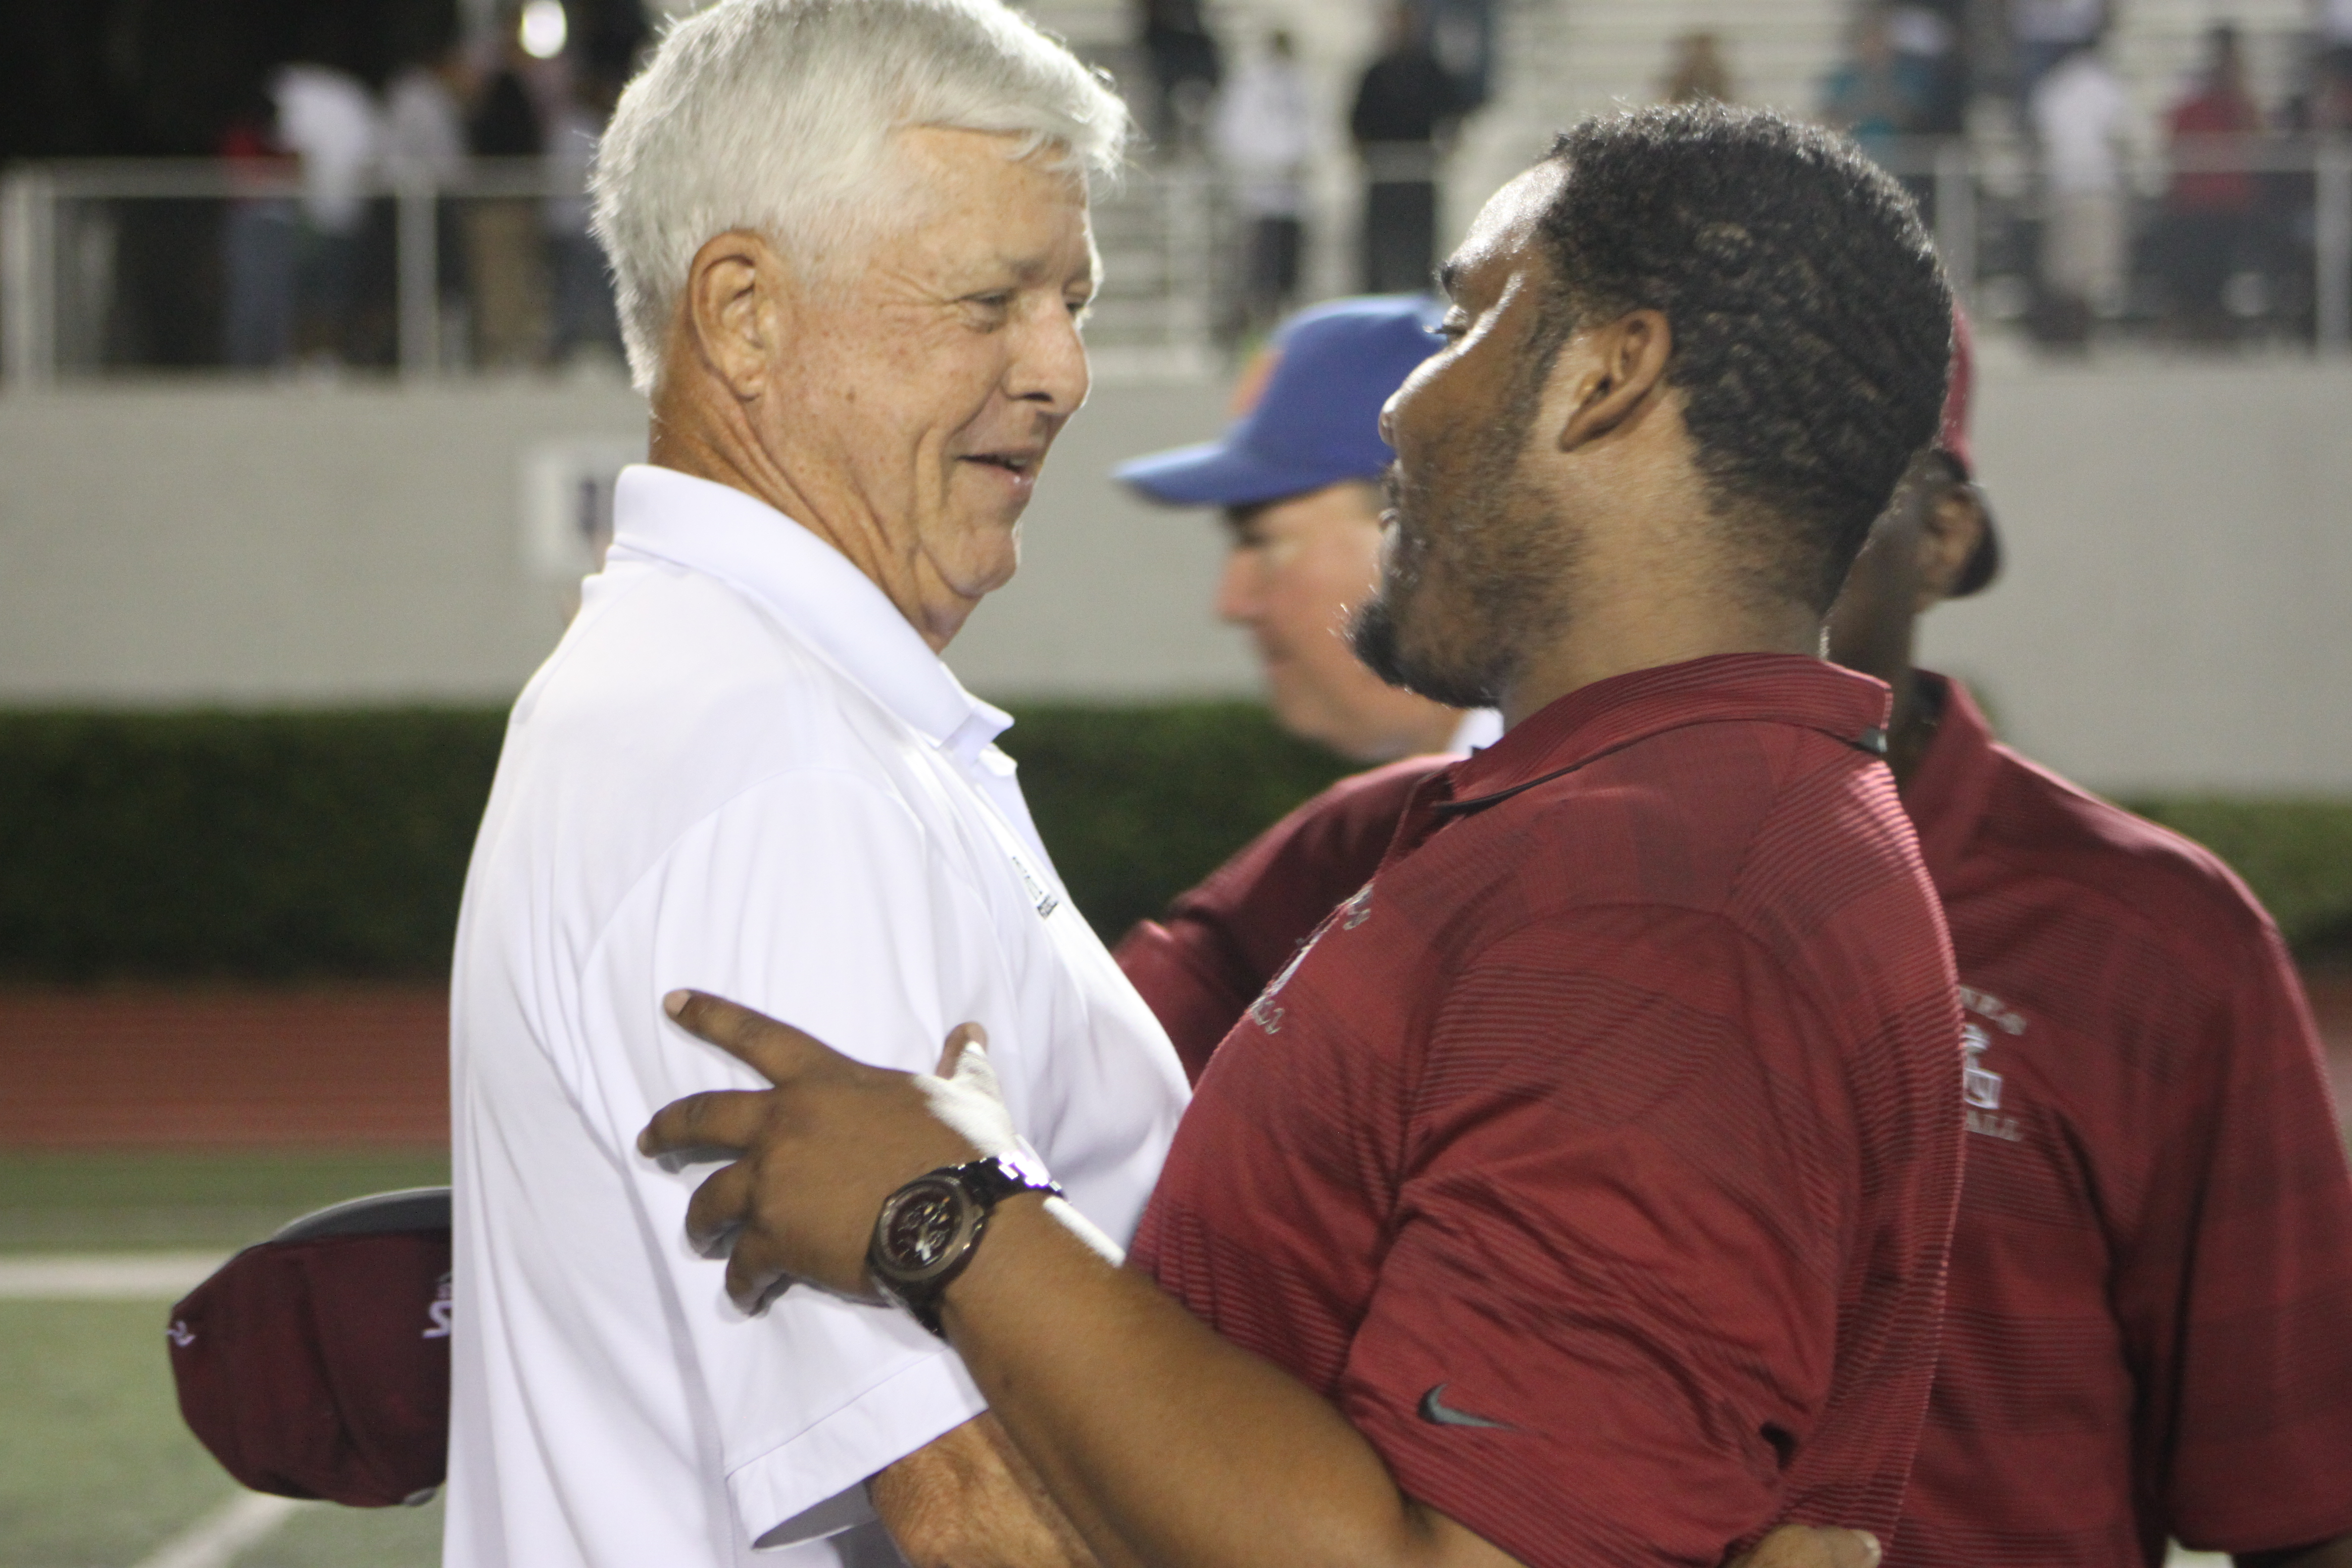 Head Coaches Corky Rogers (Bolles) and Deran Wiley (Raines) embrace after their hard faught game last week